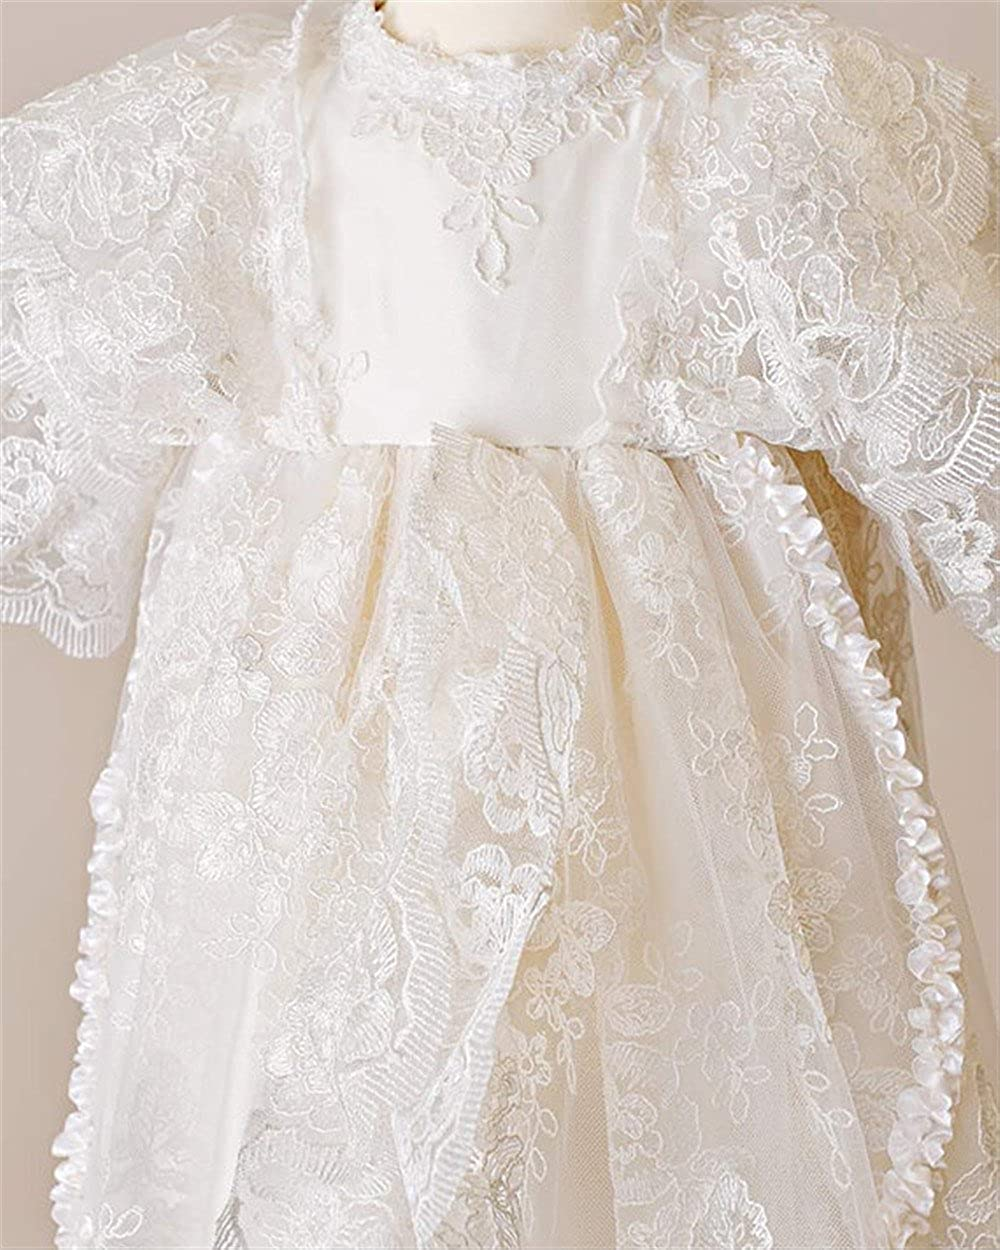 Newdeve Short Sleeve White Lace Christening Baptism Gowns Long With Headband